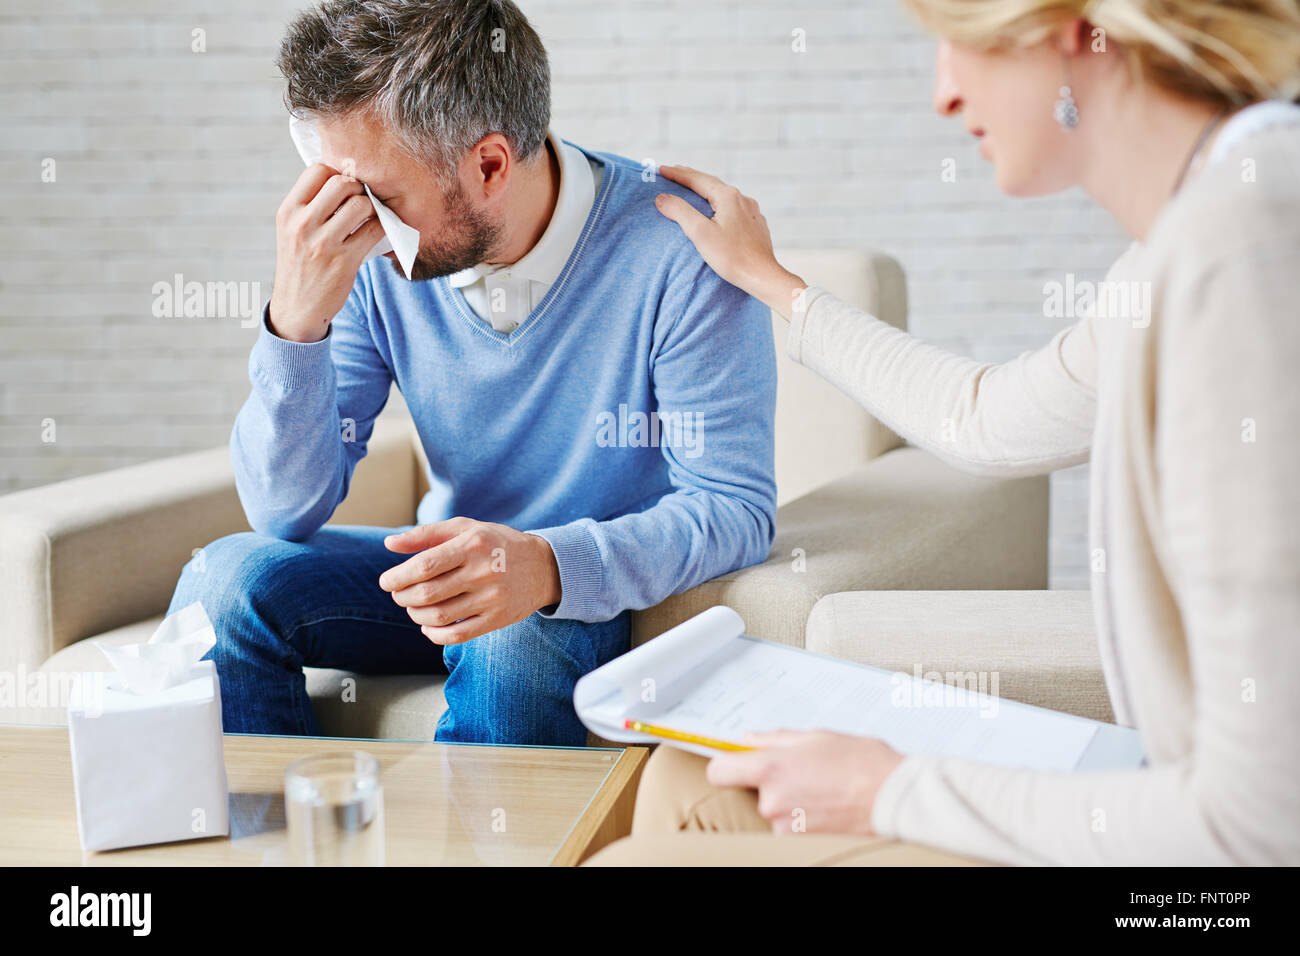 Depressed man crying while visiting his psychologist - Stock Image